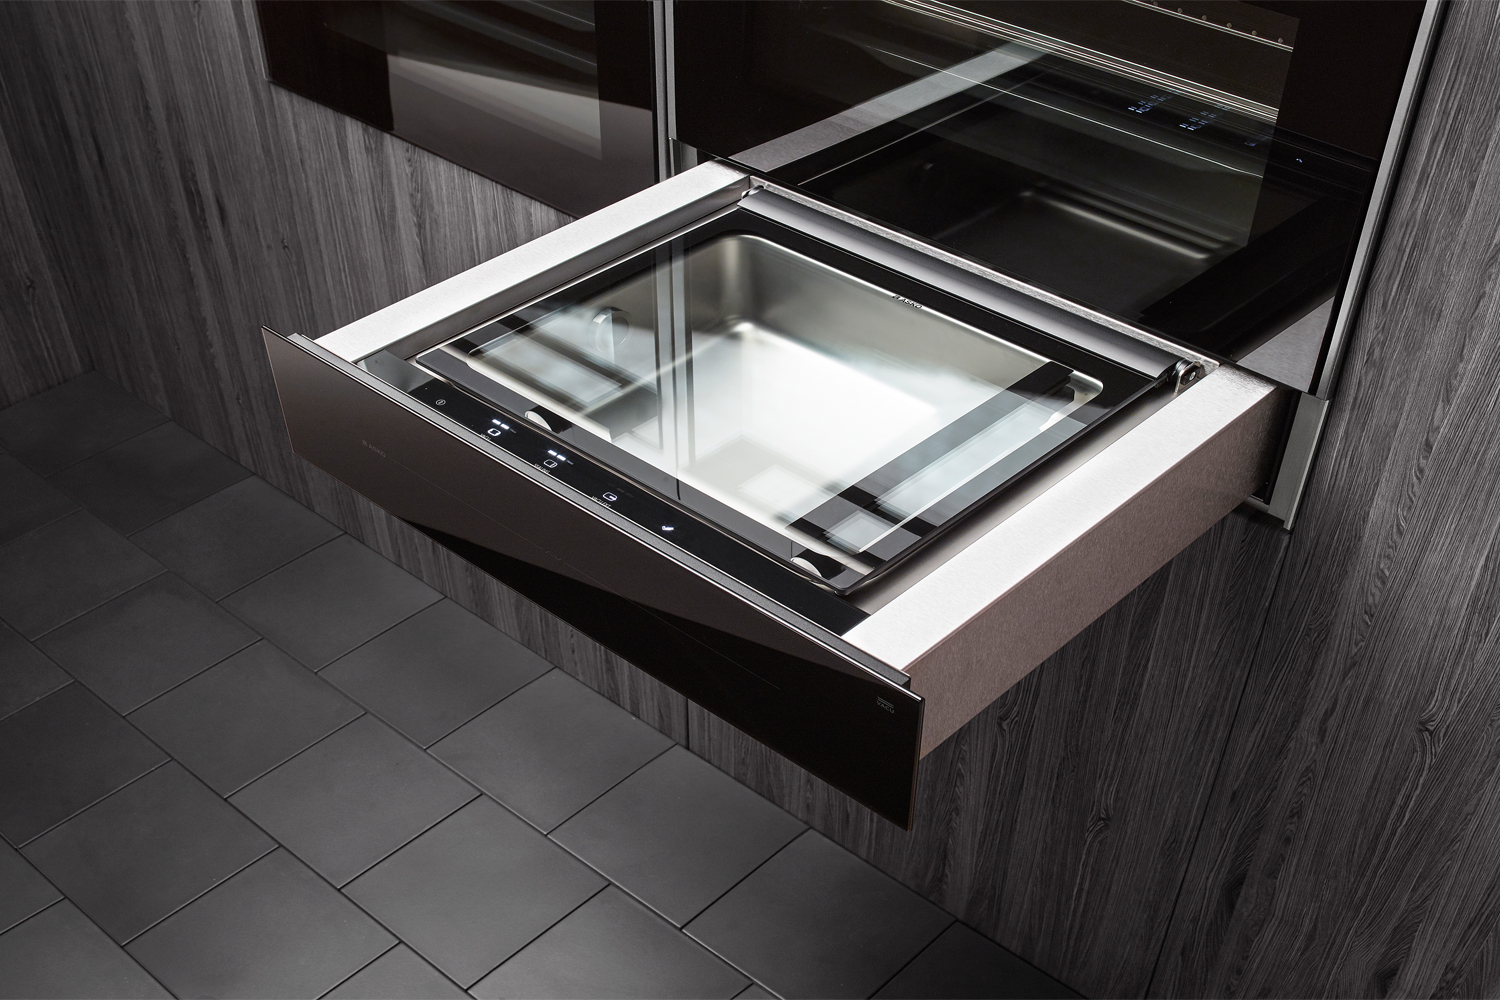 Sous-vide cooking: modern kitchen appliance - Asko vaccuum seal drawer in wall